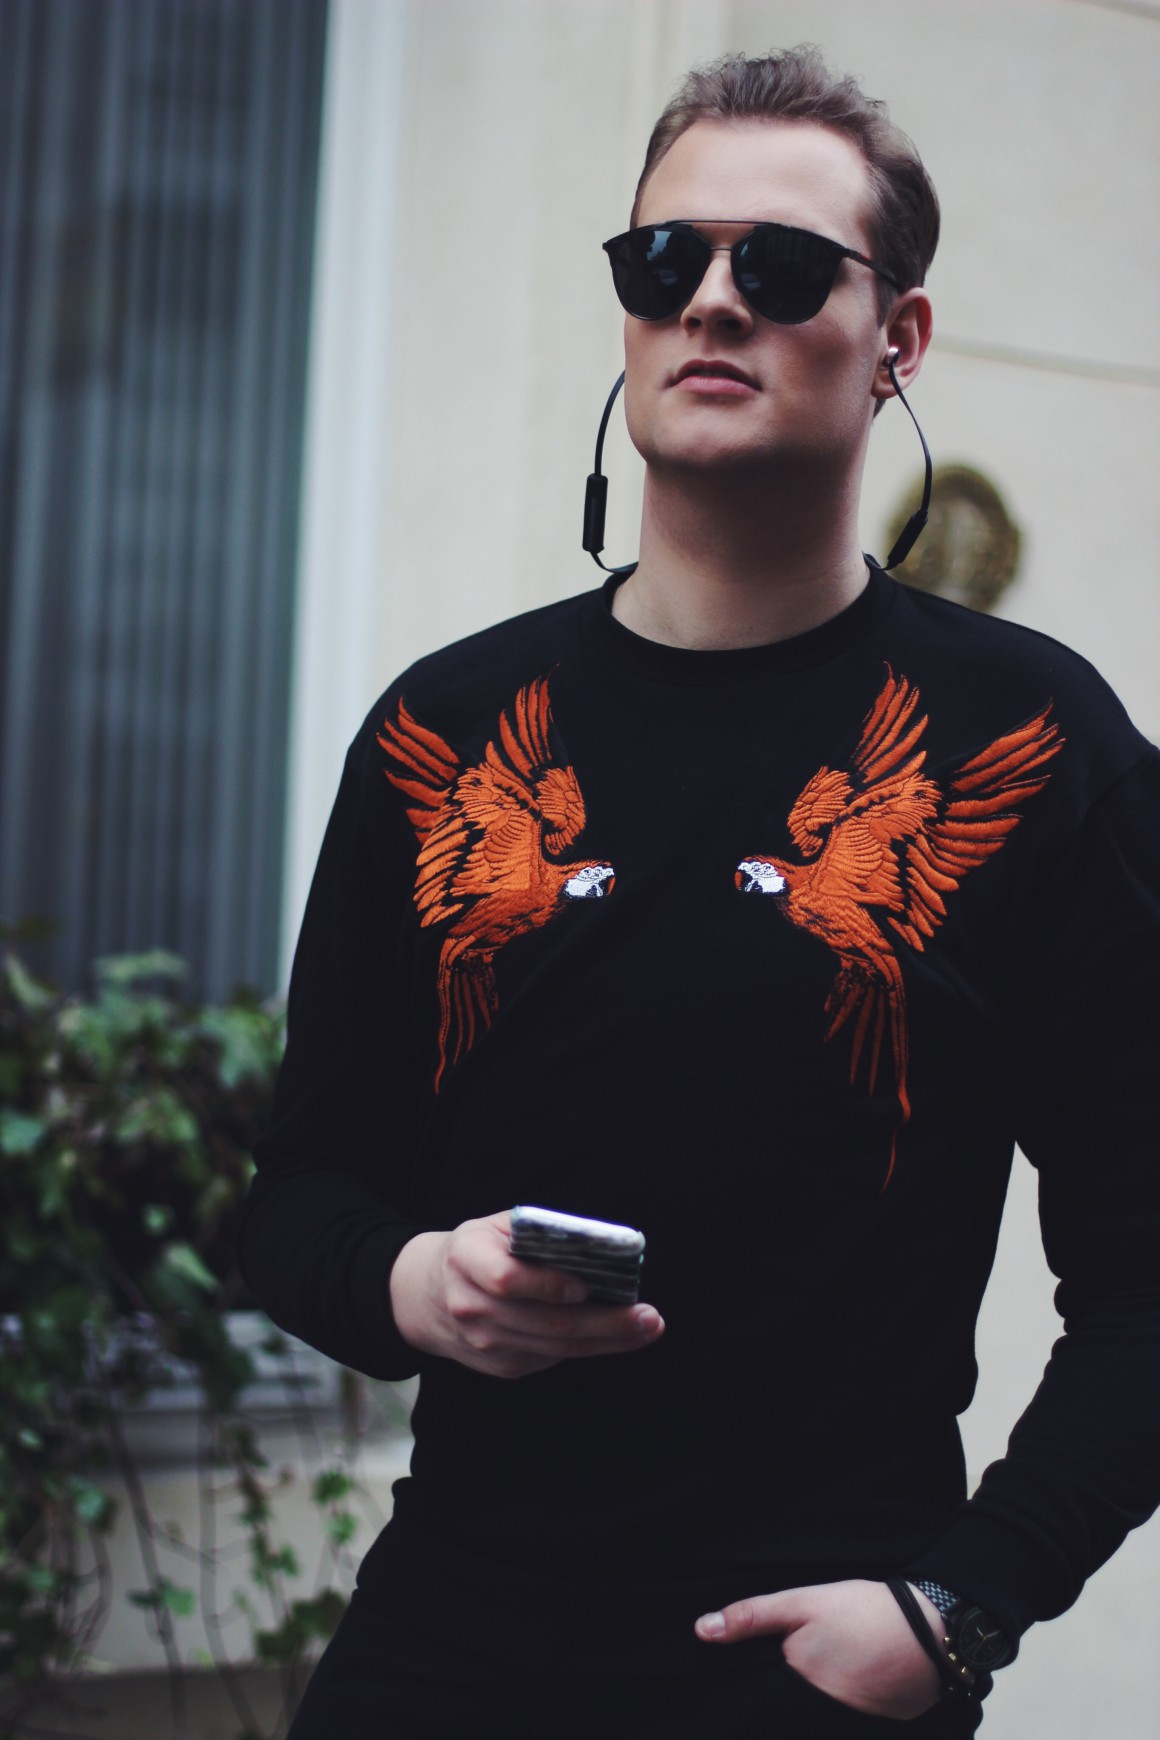 Parrots Zara Sweater, Zara trousers, Gstar shoes, Stylerepertoire sunglasses, Triwa watch, deux bracelets, ootd - JustKVN menswear and lifestyle blog